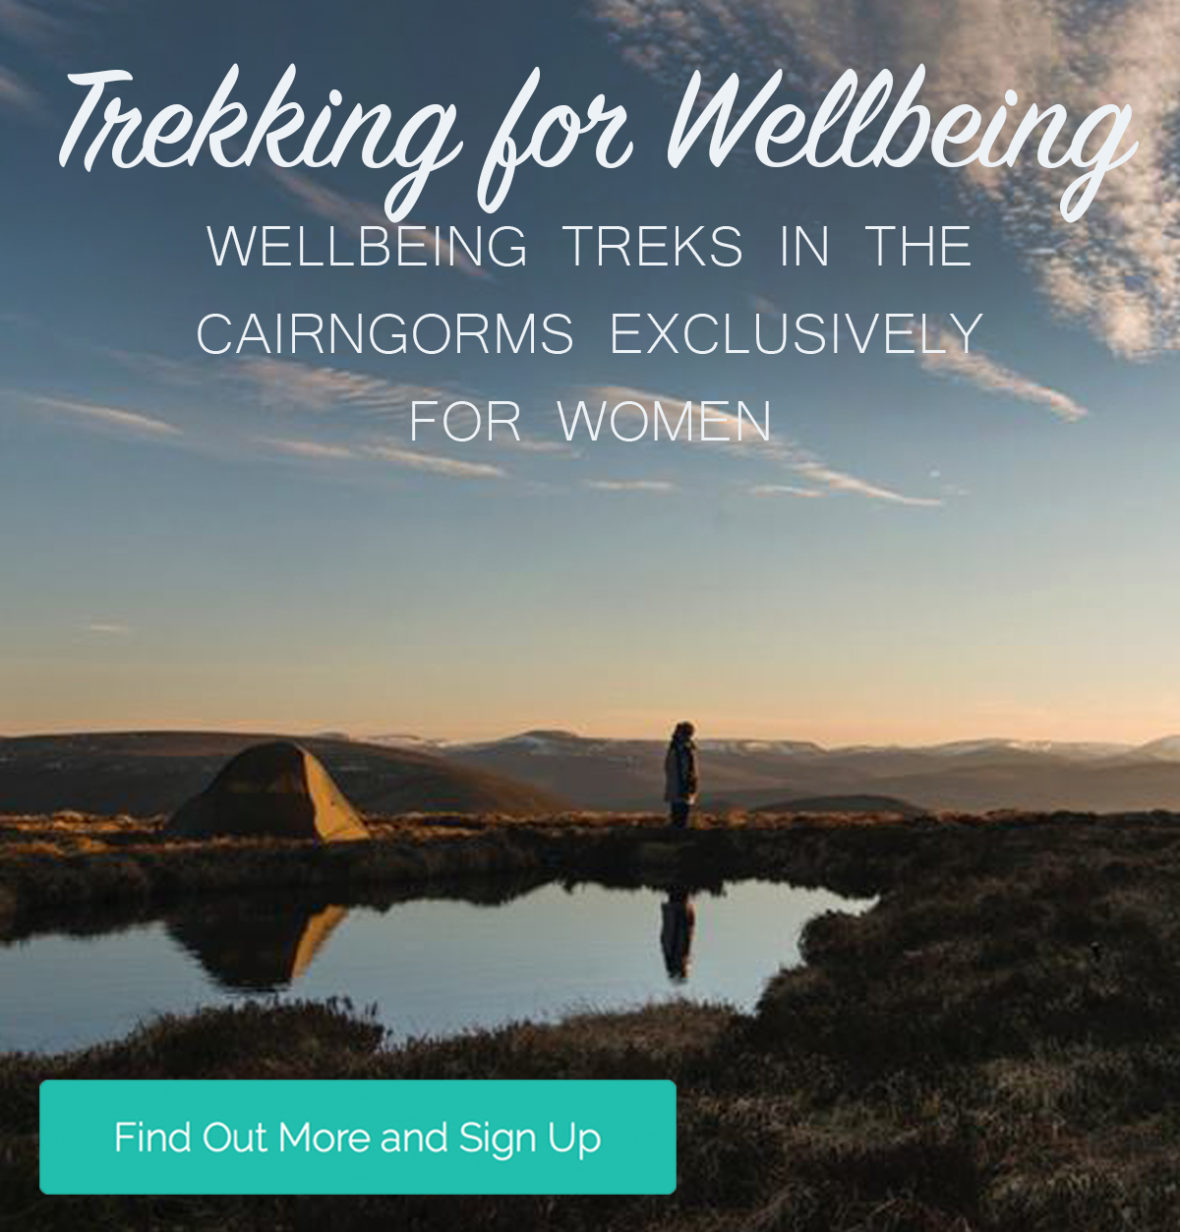 trekking for wellbeing